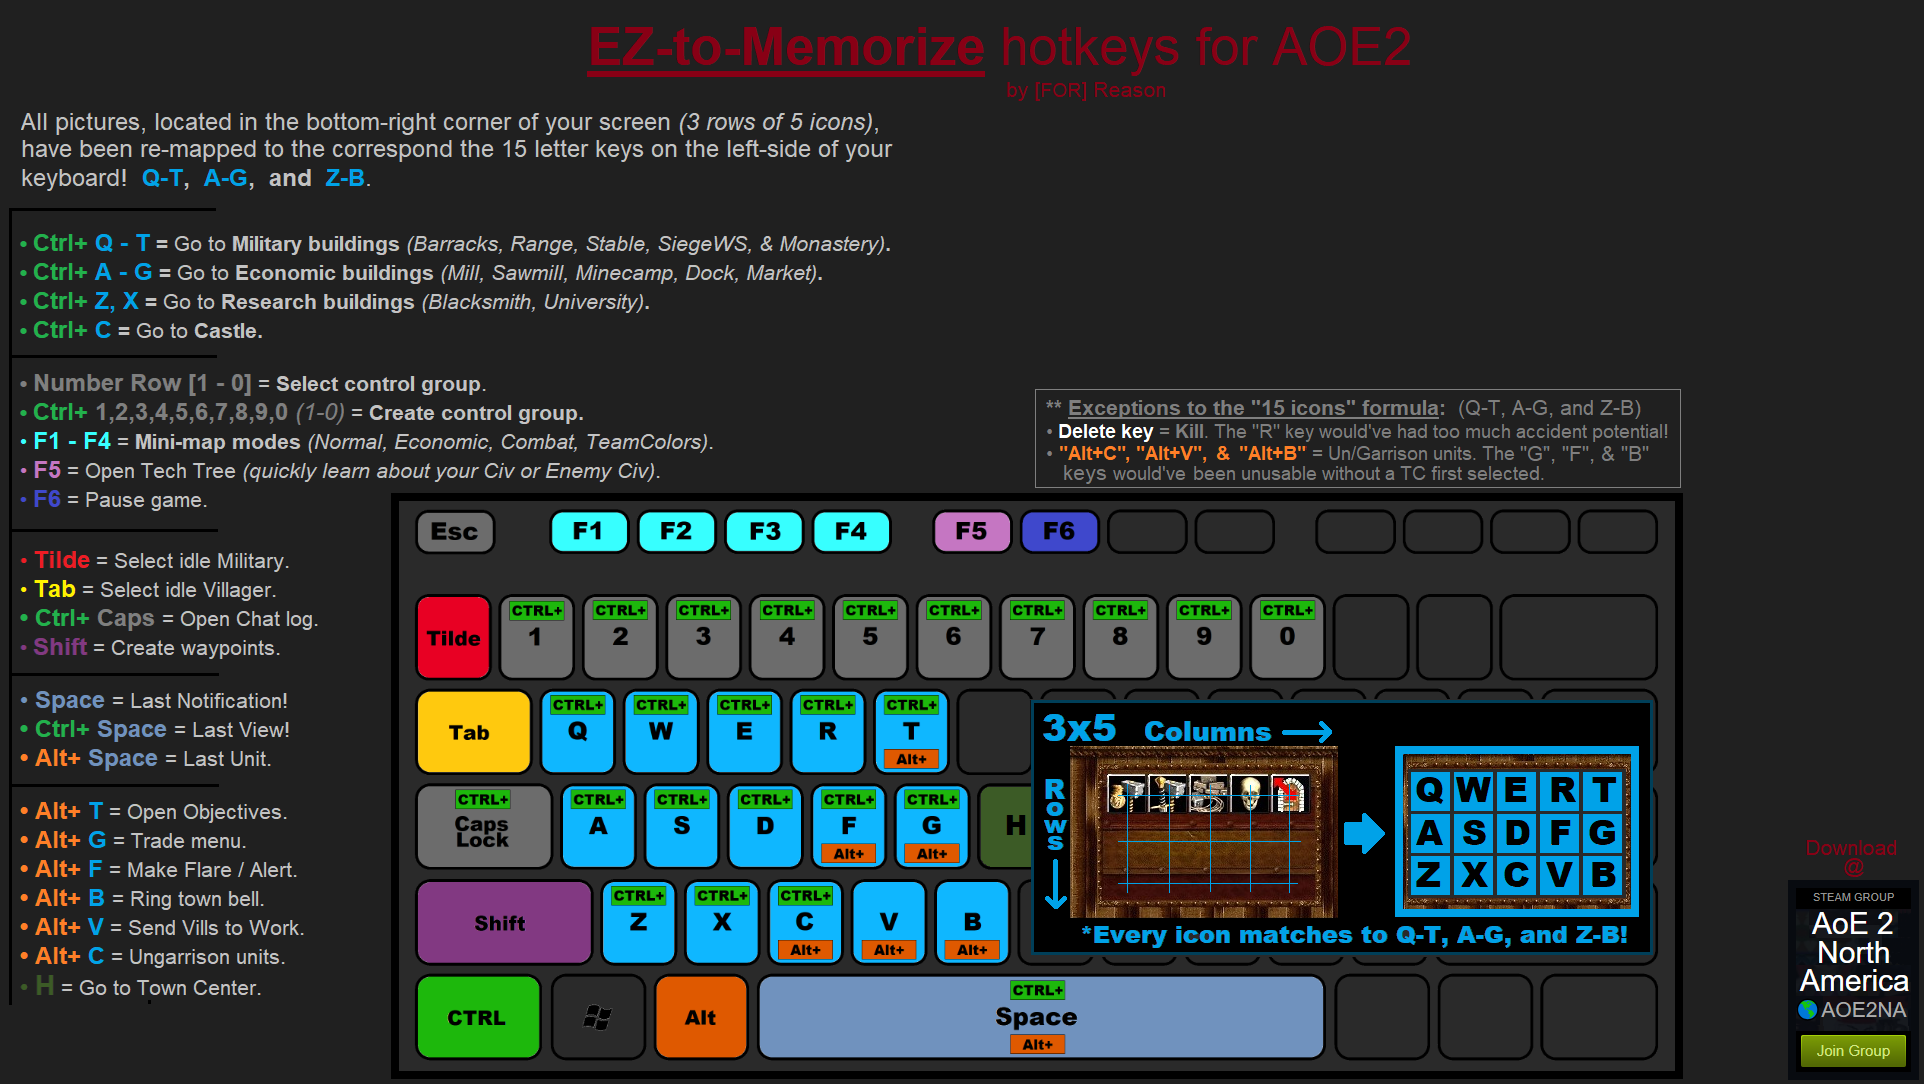 Age Of Empires 2 Hot Keys